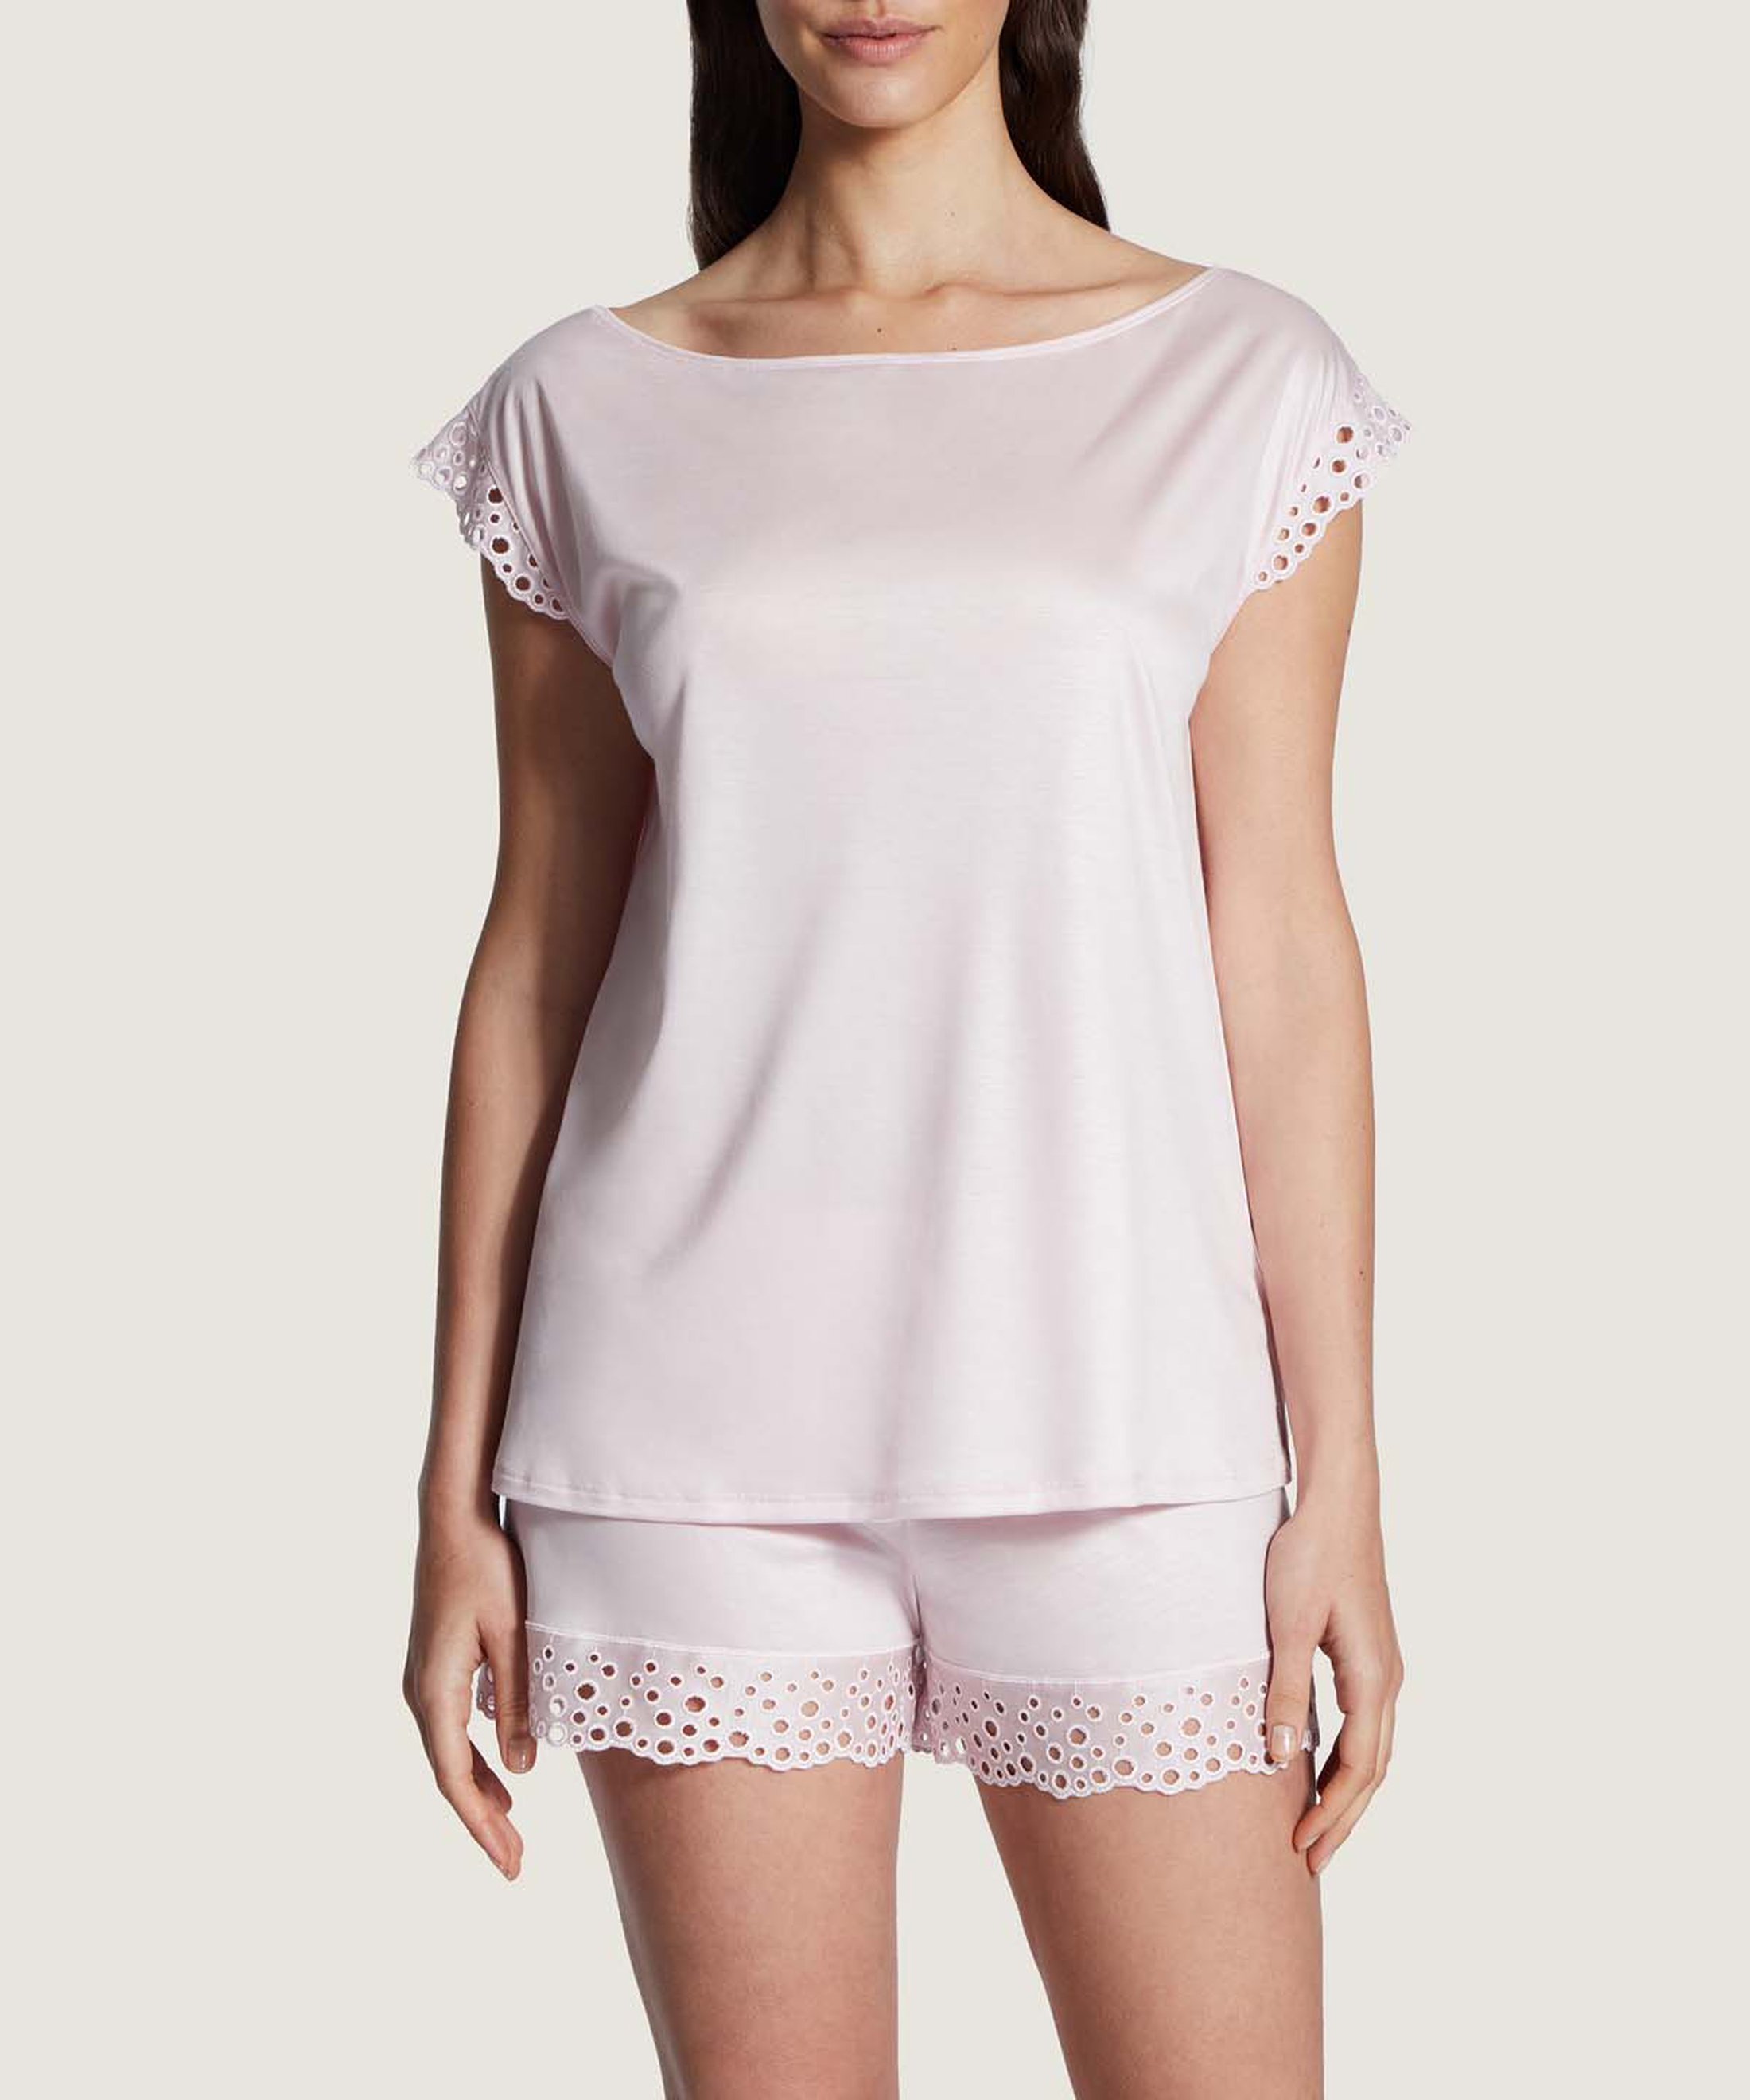 BULLE DE DOUCEUR Shorty en Tencel Rose pâle | Aubade